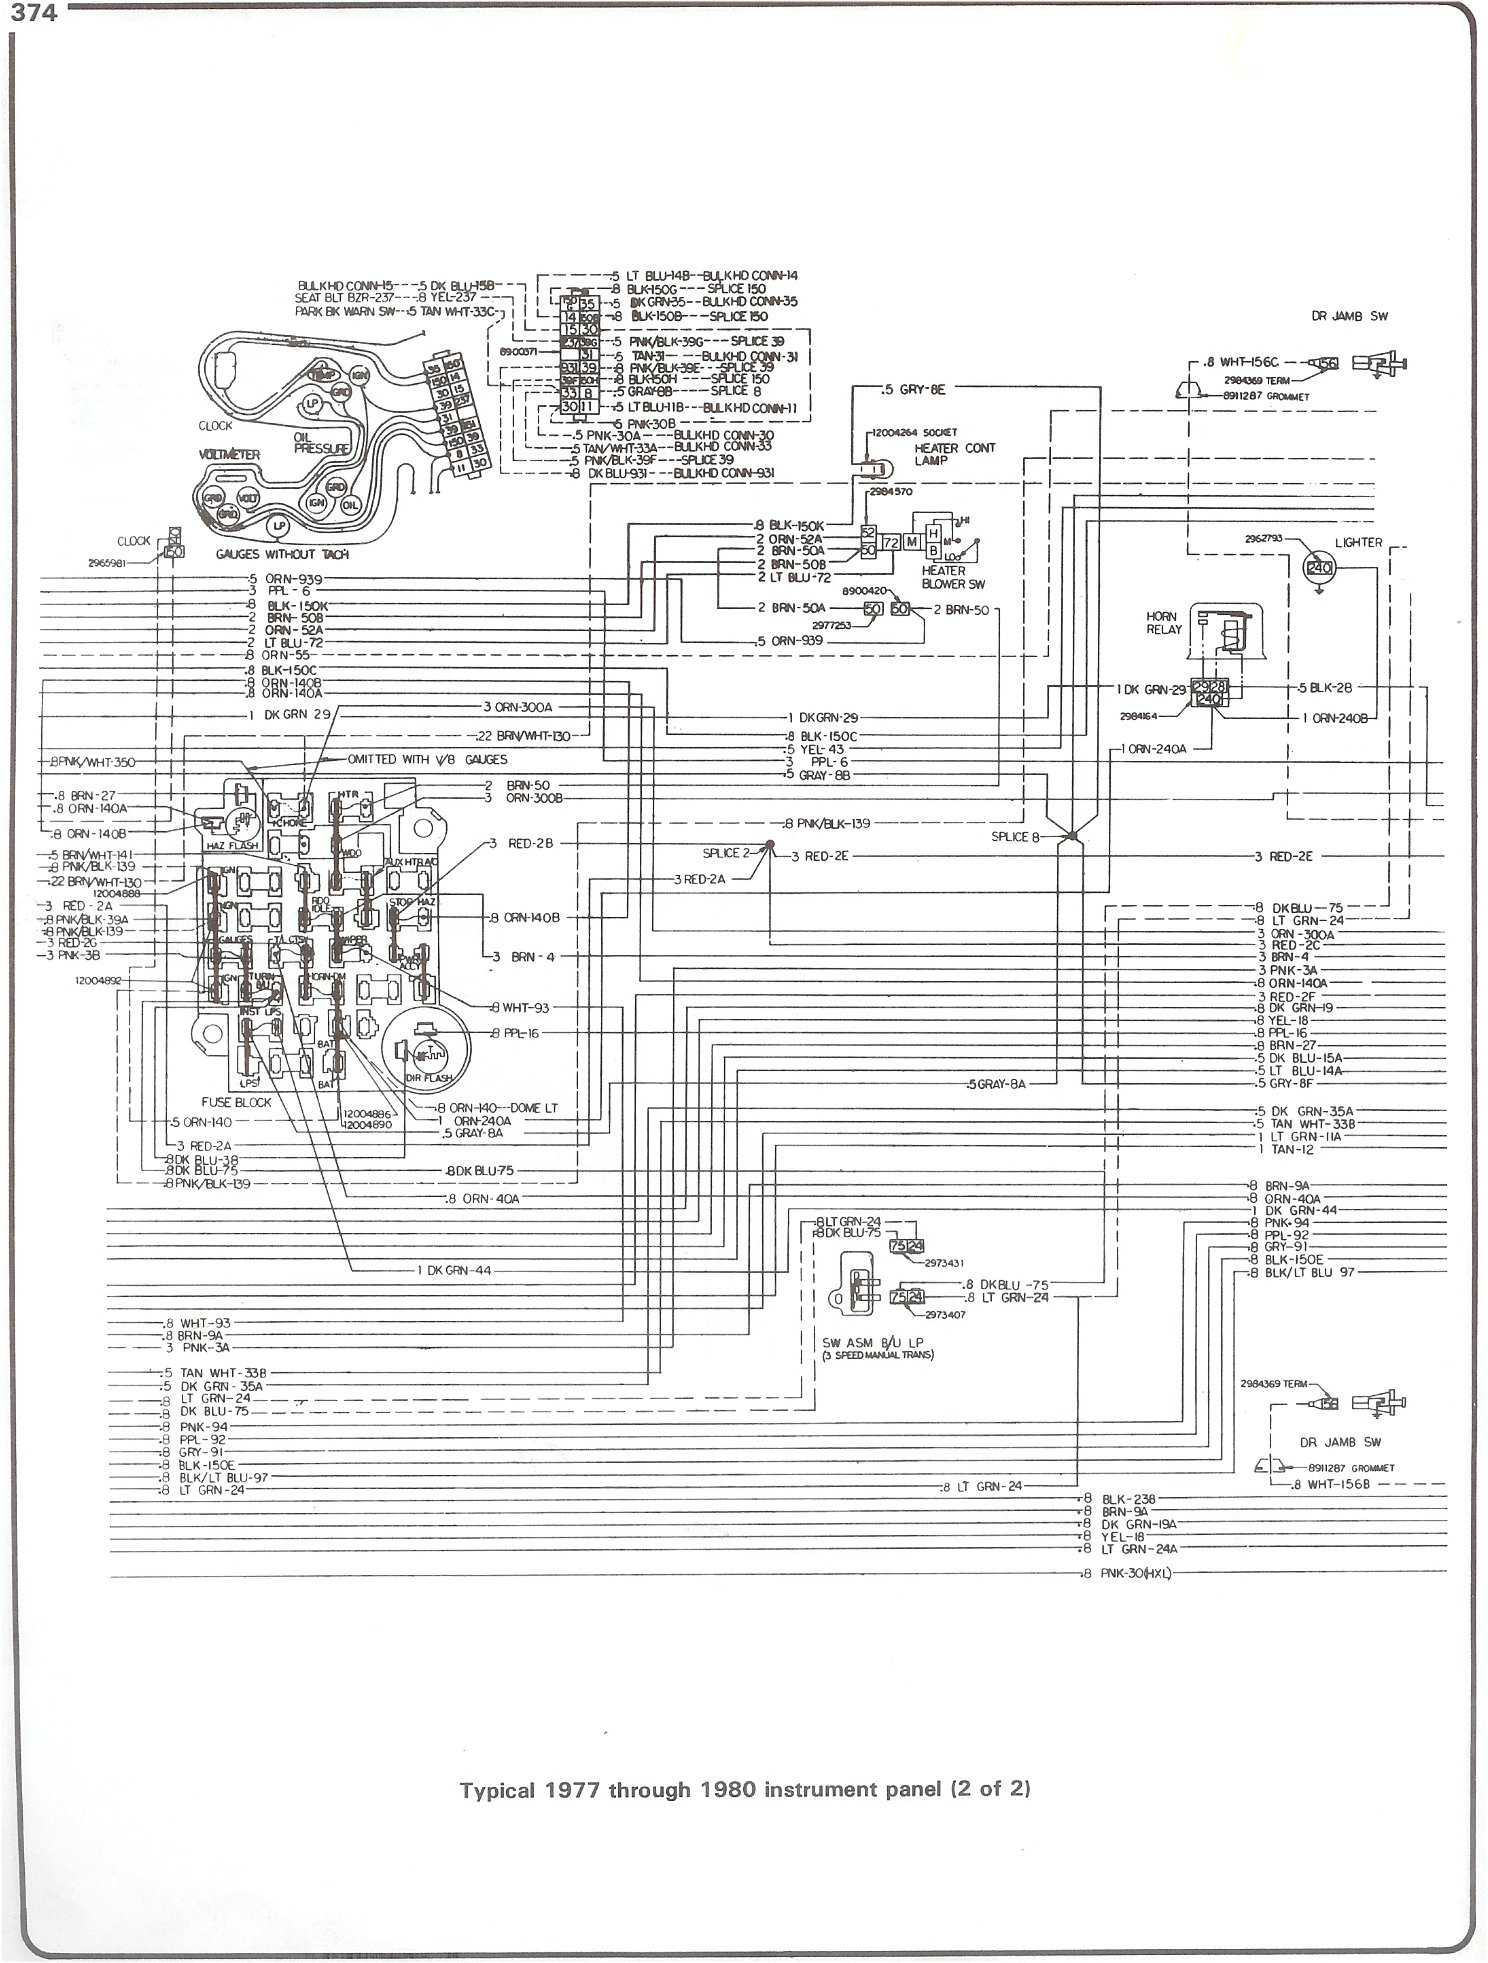 complete 73 87 wiring diagrams rh forum 73 87chevytrucks com chevy wiring diagram bcm 2002 suburban chevy wiring diagram for a 1997 astro van